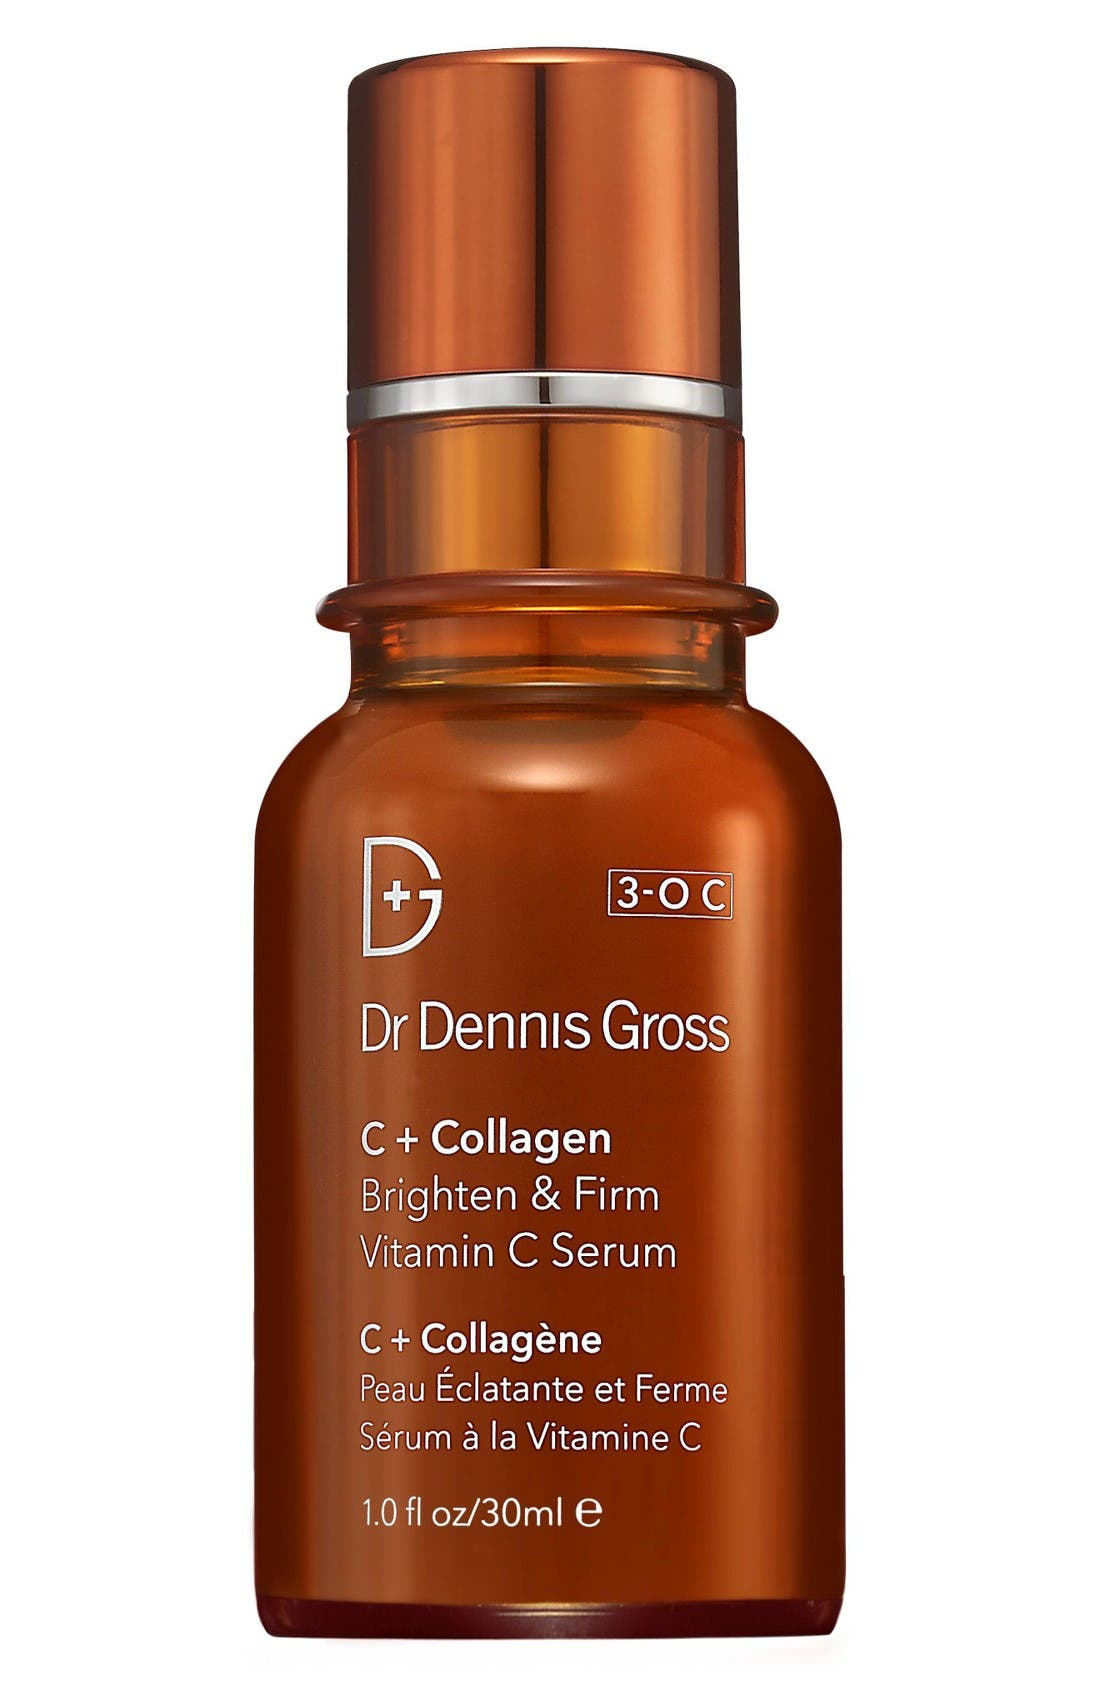 Dr. Dennis Gross Skincare C+ Collagen Brighten & Firm Vitamin C Serum